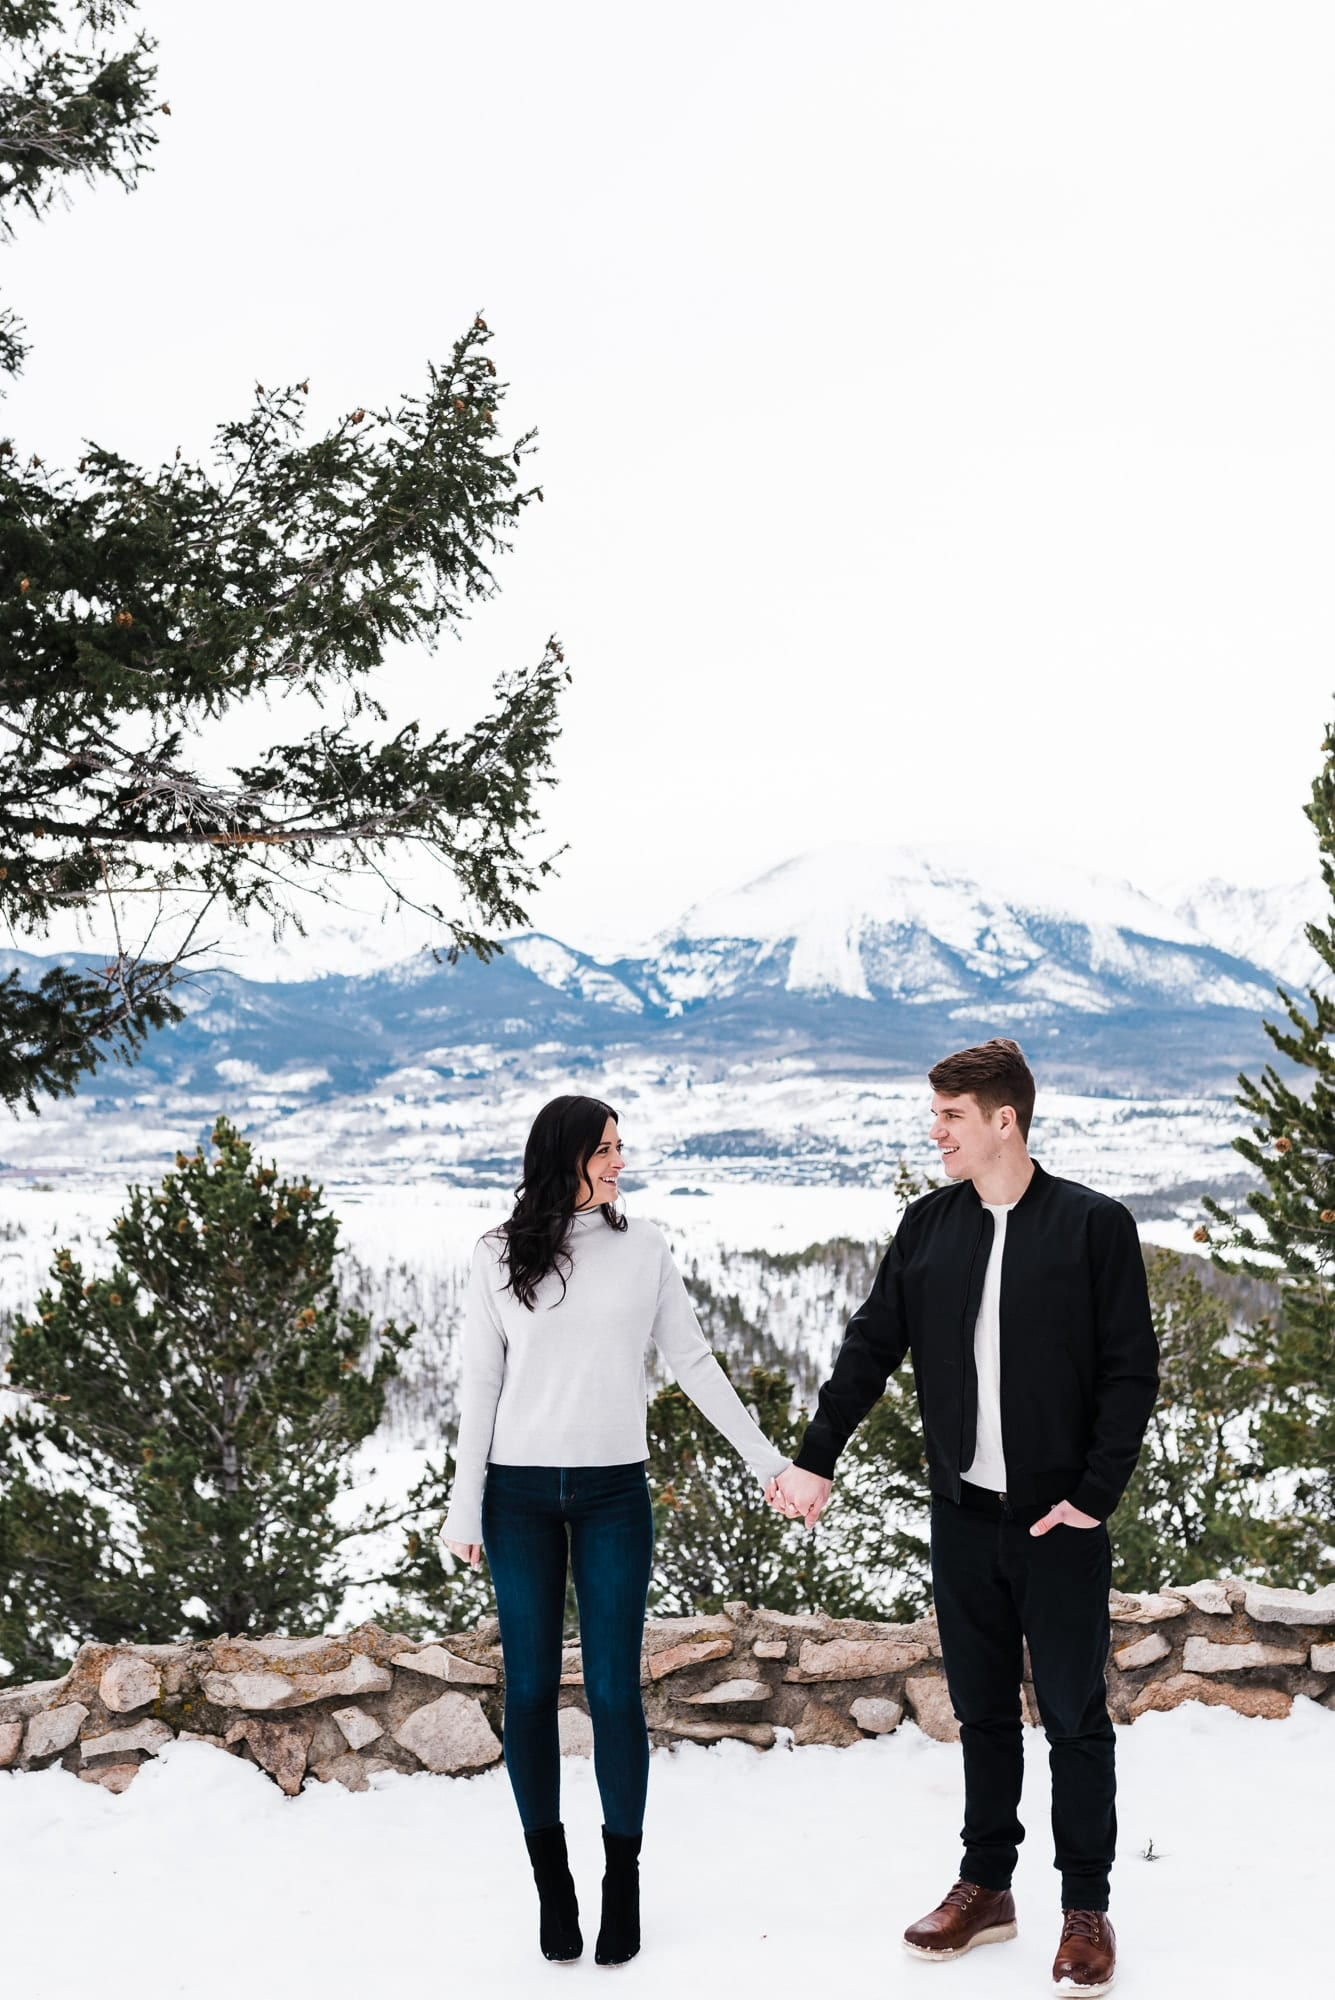 Colorado Winter Engagement Photos by Josie V